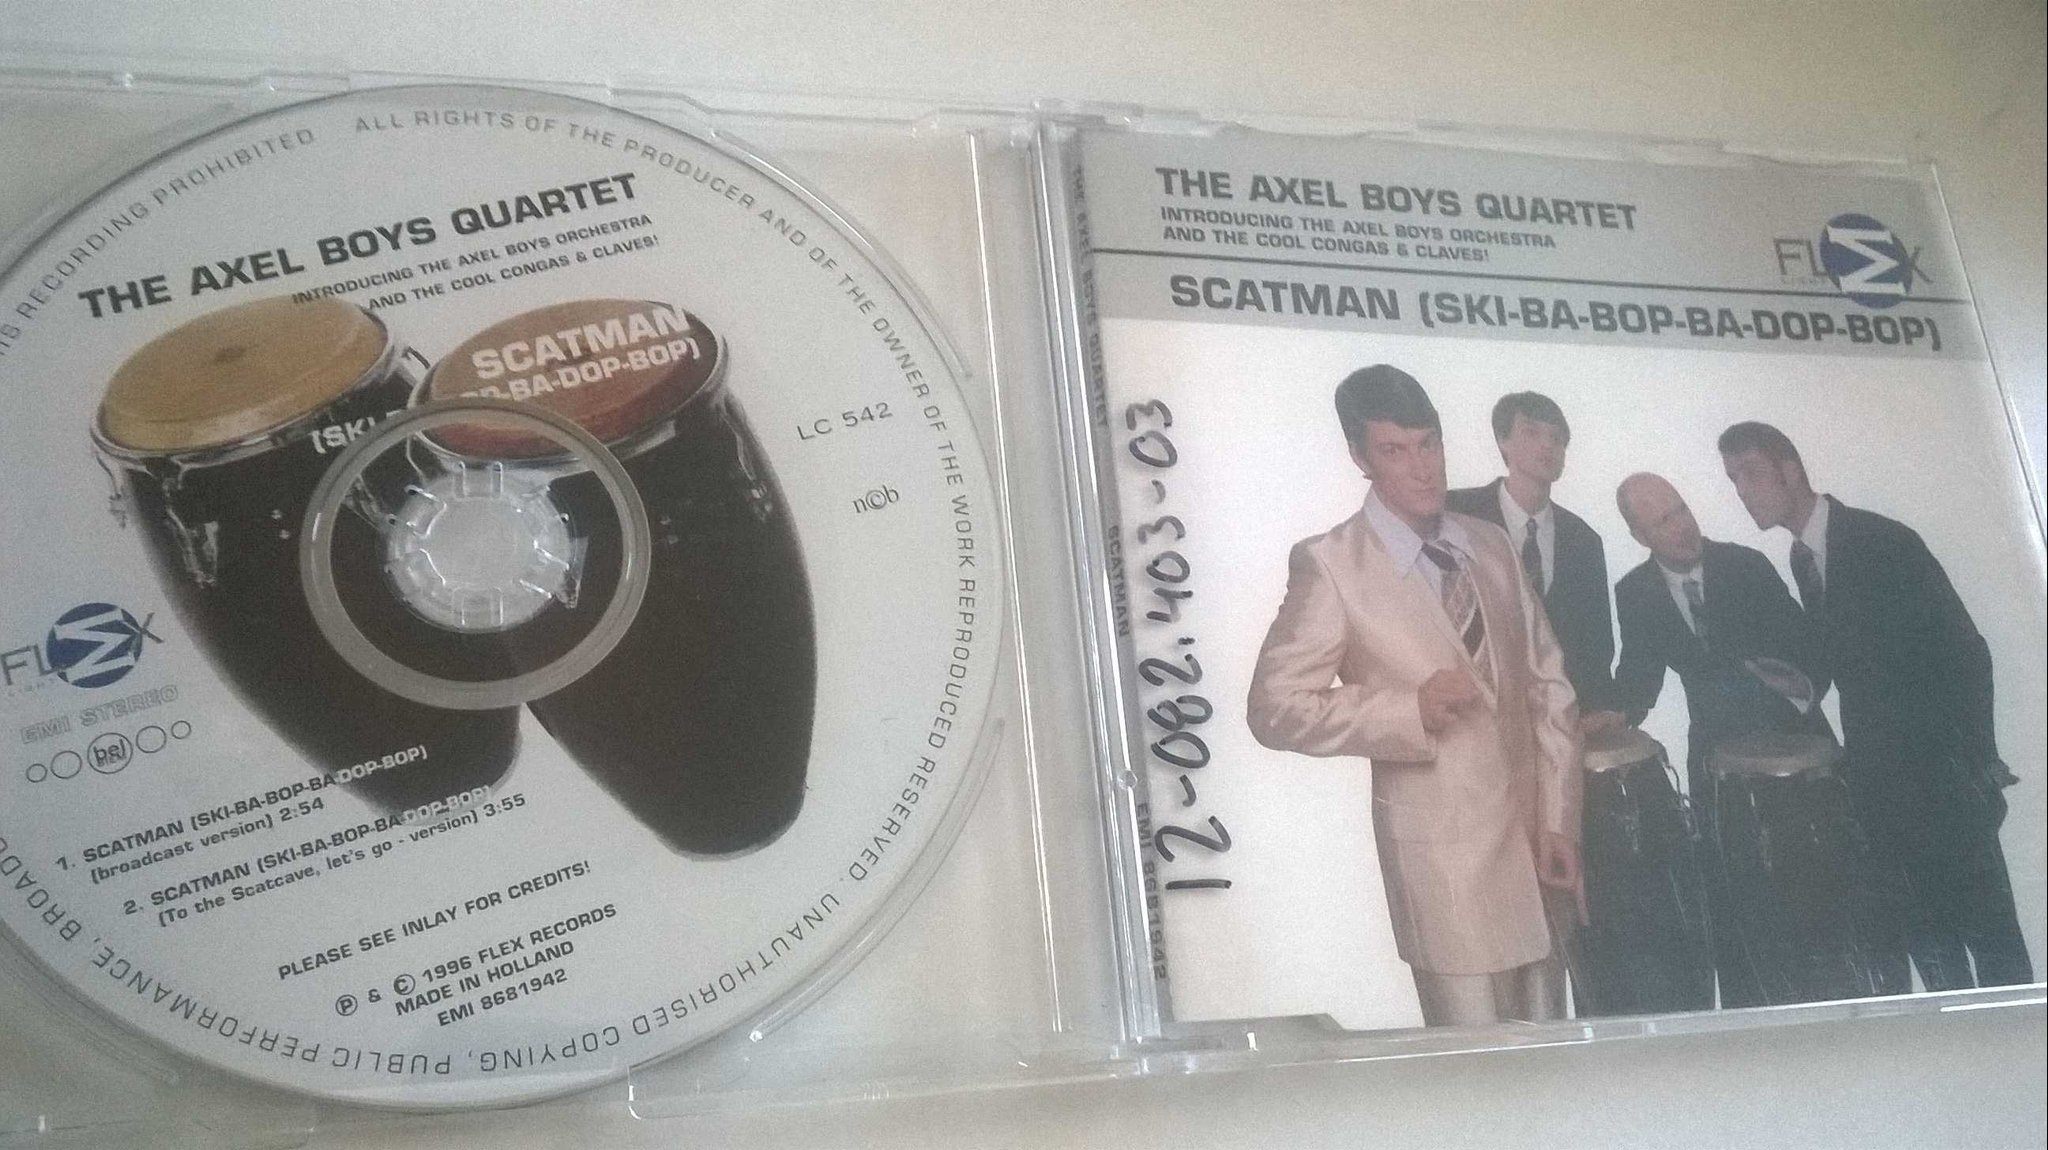 The Axel Boys Quartet - Scatman (Ski-Ba-Bop-Ba-Dop-Bop), CD